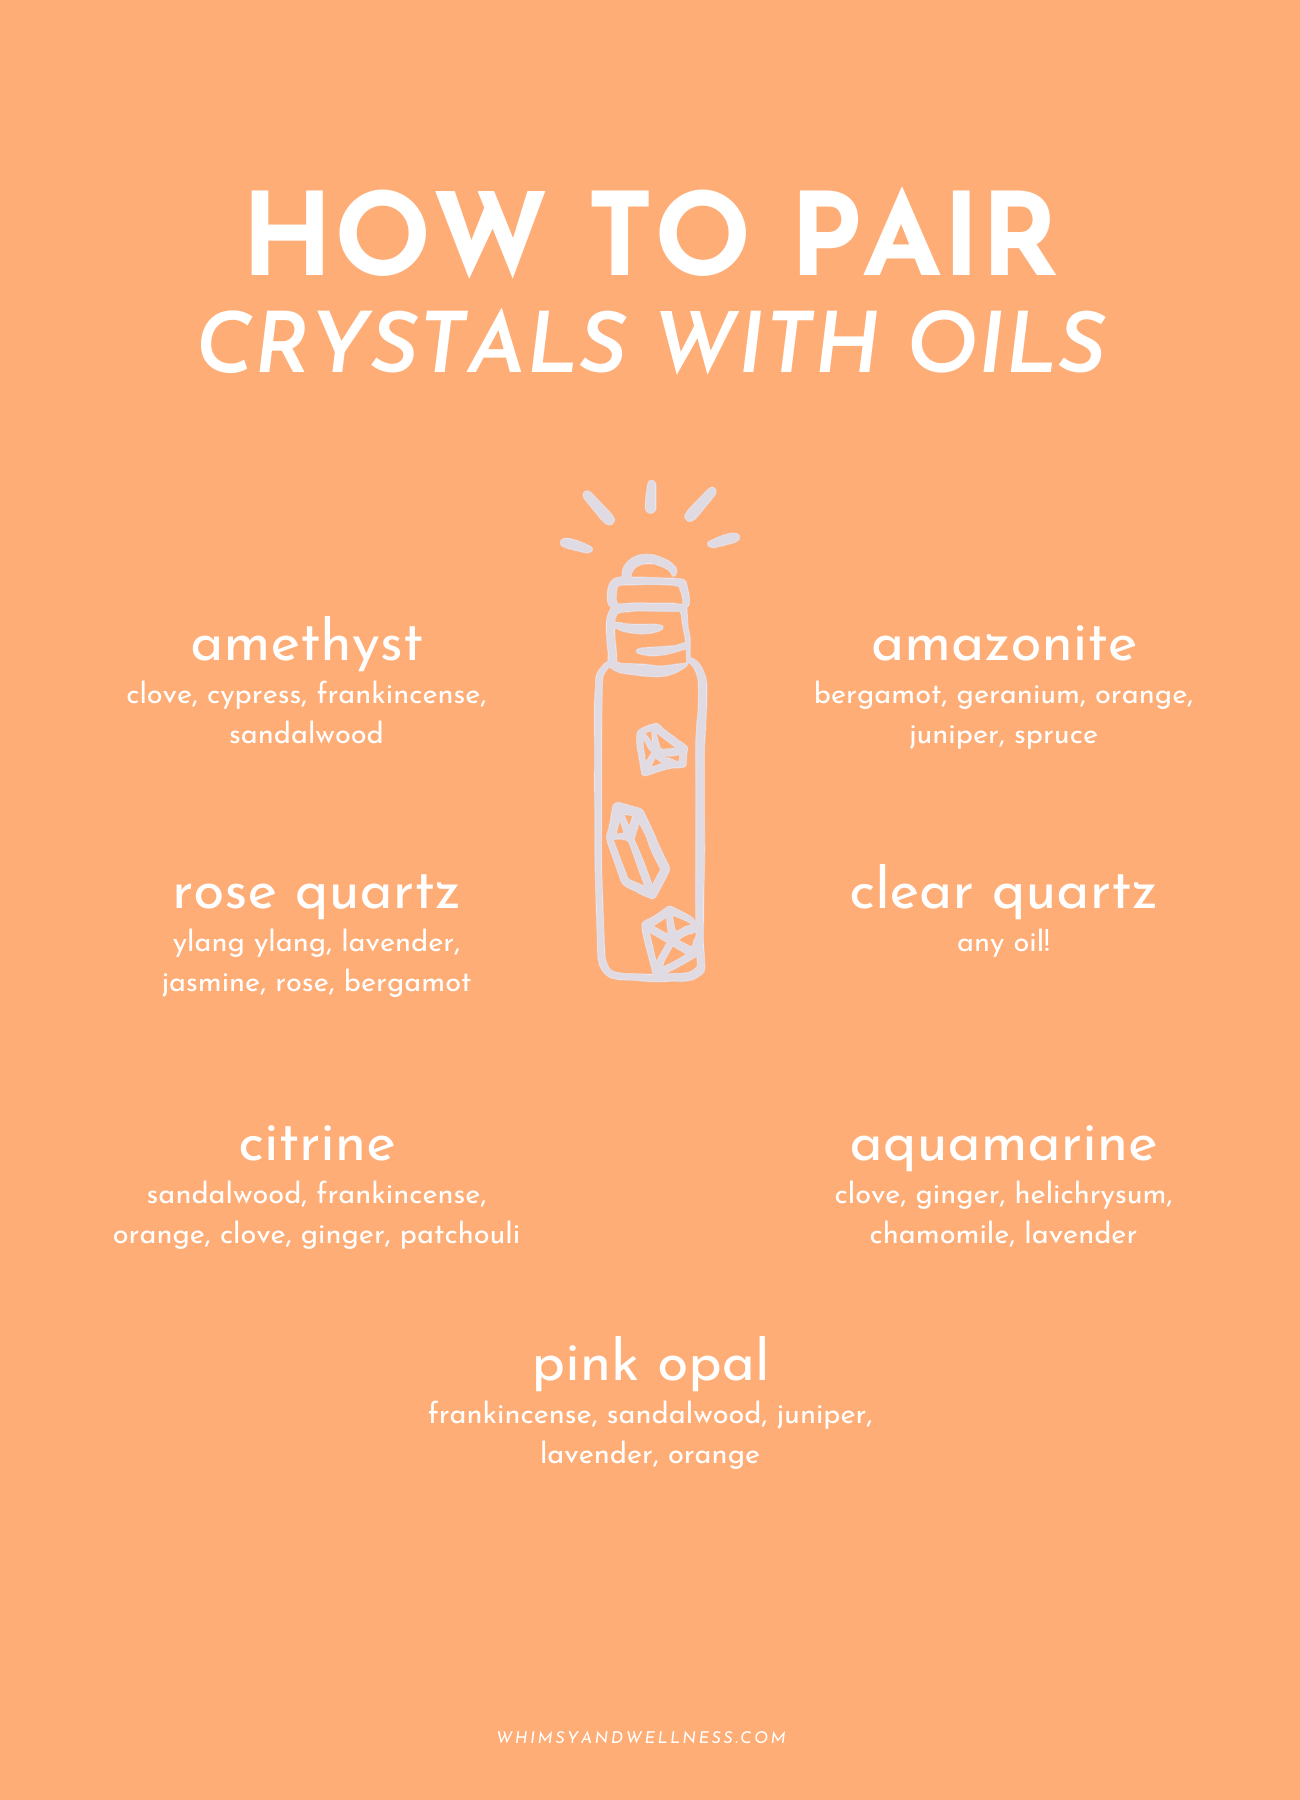 how to pair crystals with oils chart whimsy + wellness